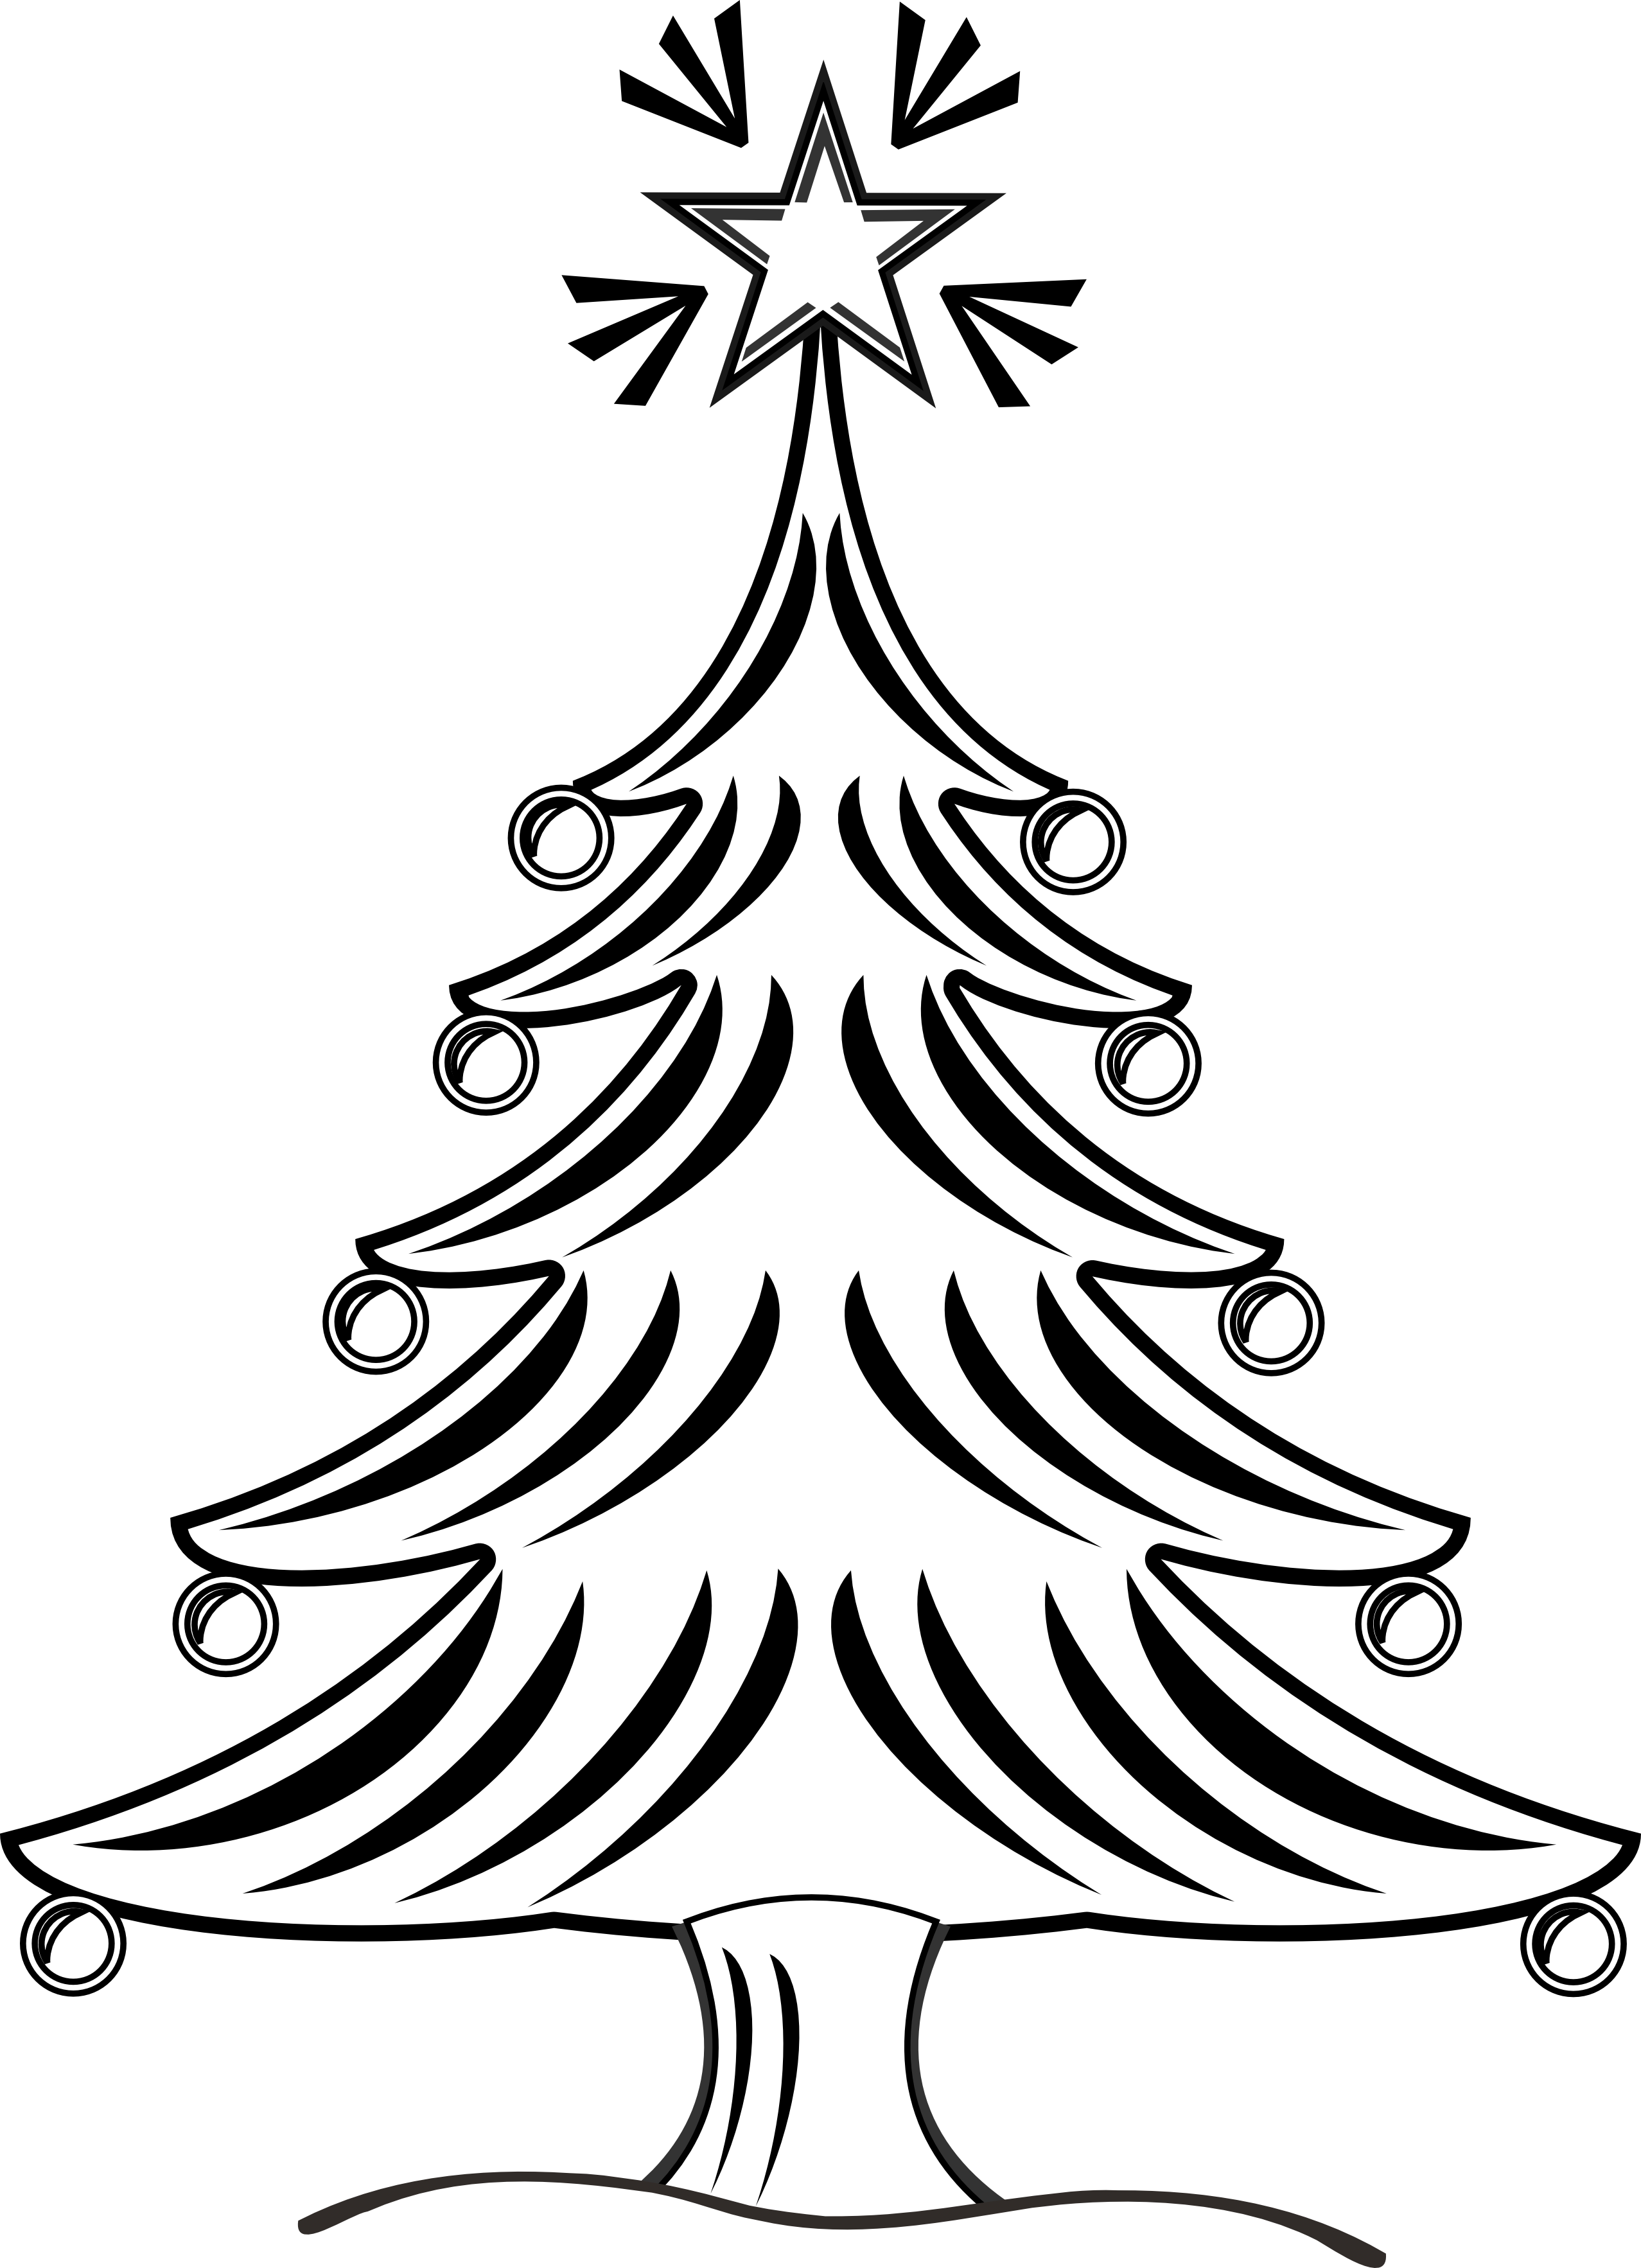 Christmas line drawing clipart picture freeuse Free Christmas Line Drawing, Download Free Clip Art, Free Clip Art ... picture freeuse